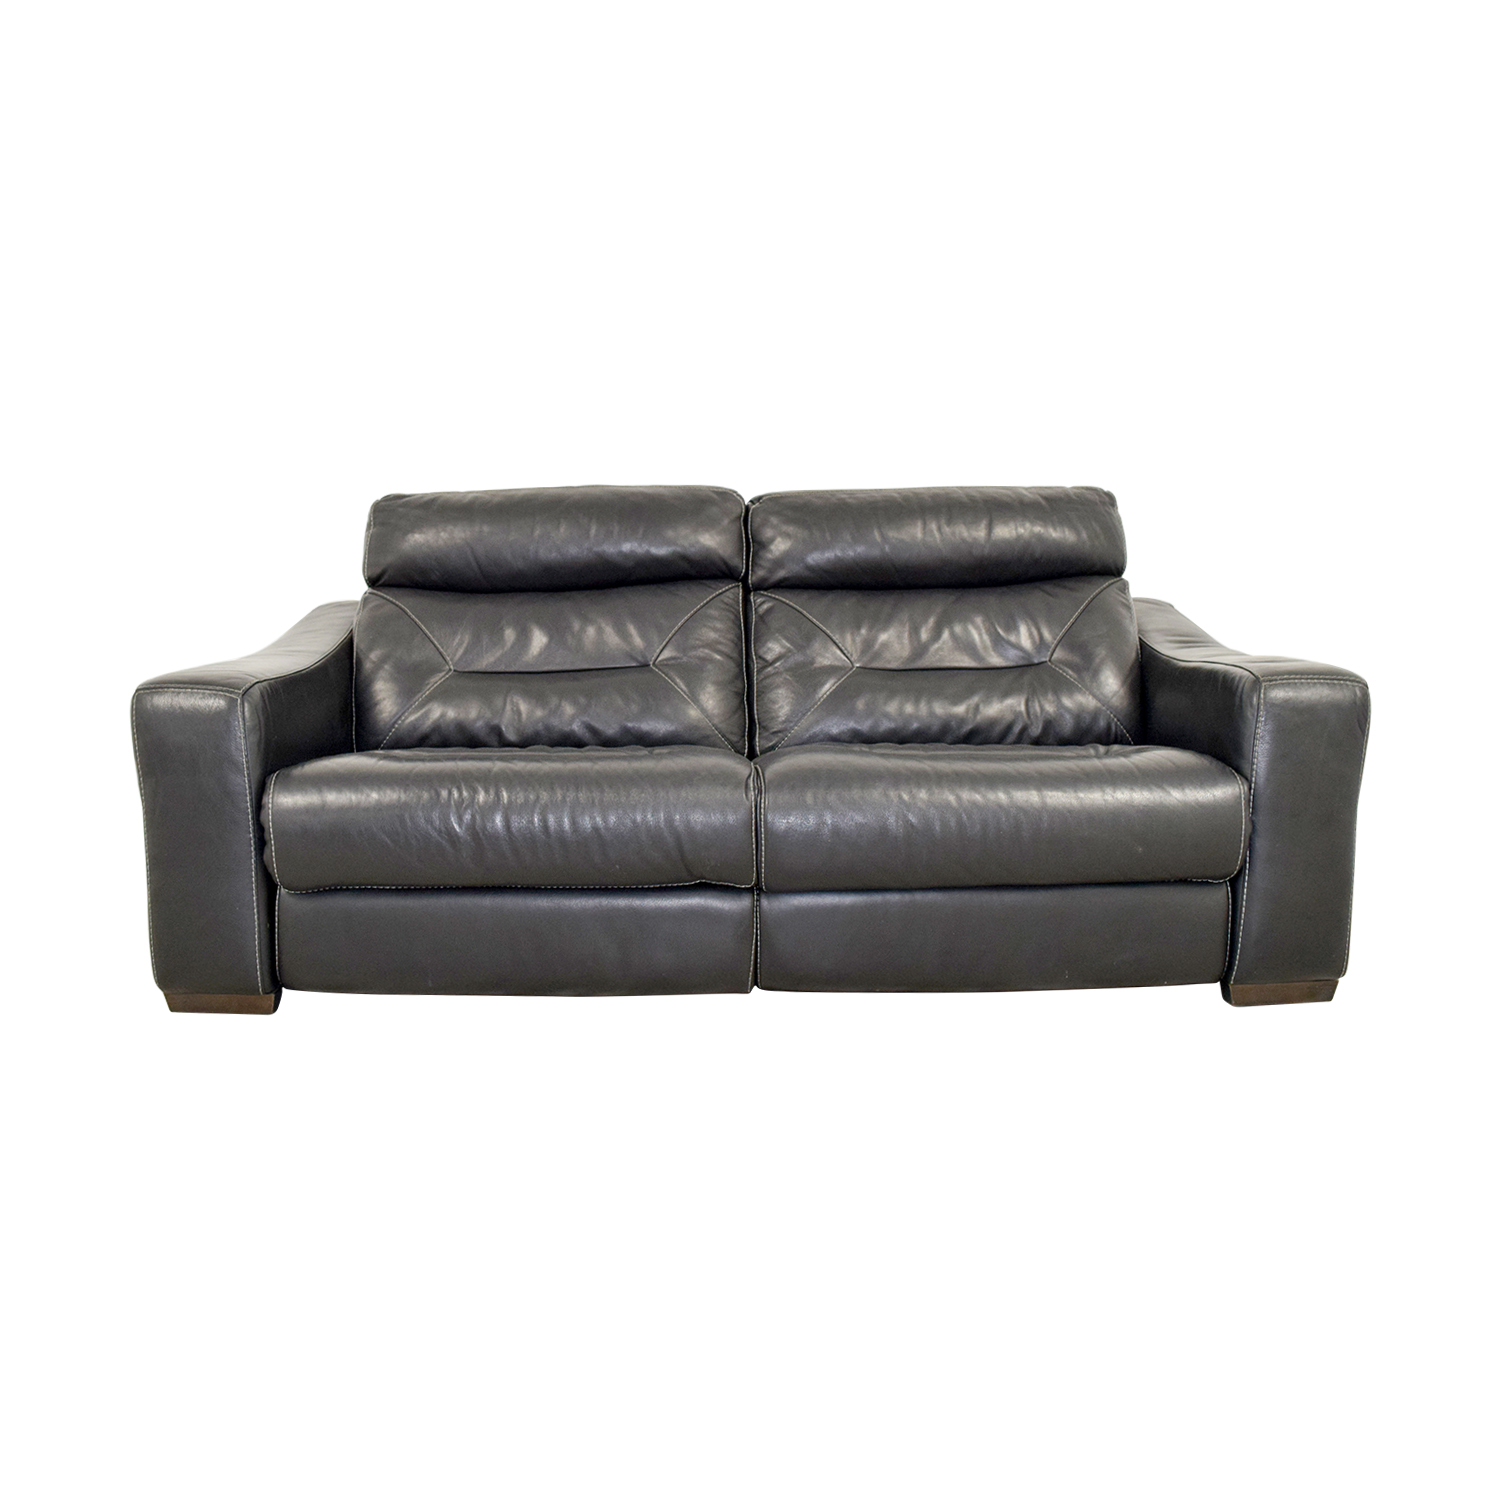 Macys Macys Black Leather Recliner Sofa